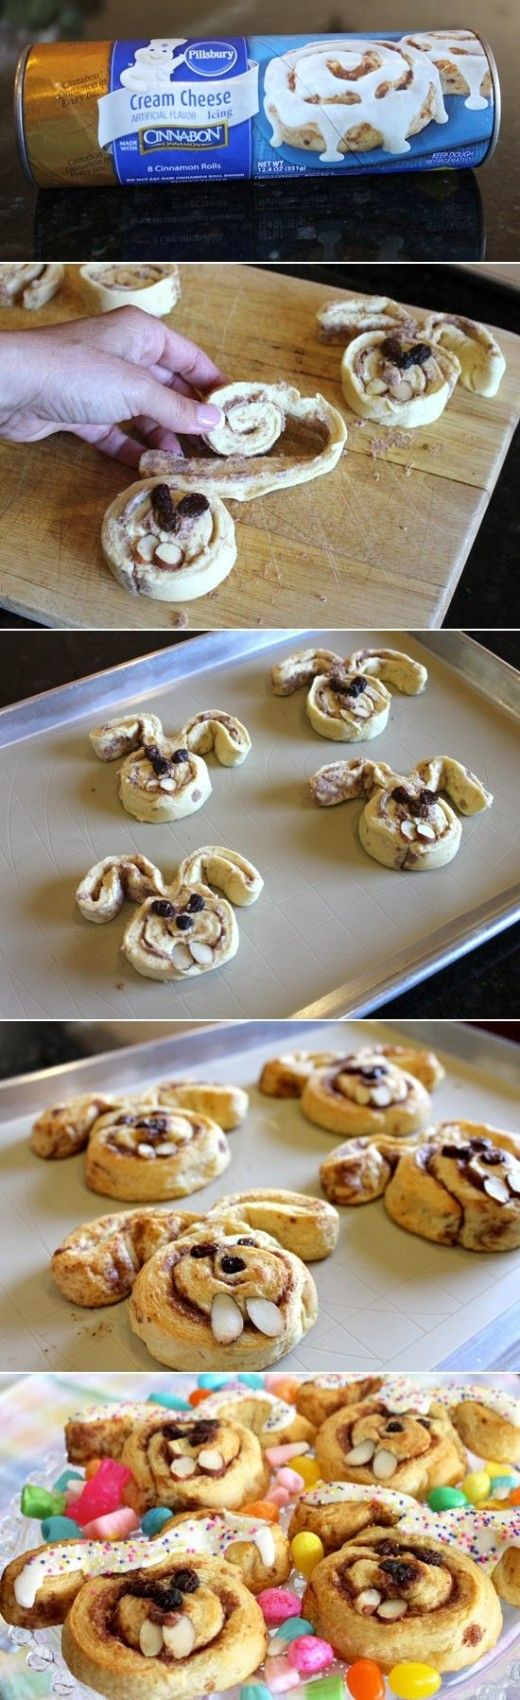 96 best paleo easter images on pinterest paleo kitchens and paleo bunny shaped cinnamon rolls diy negle Gallery